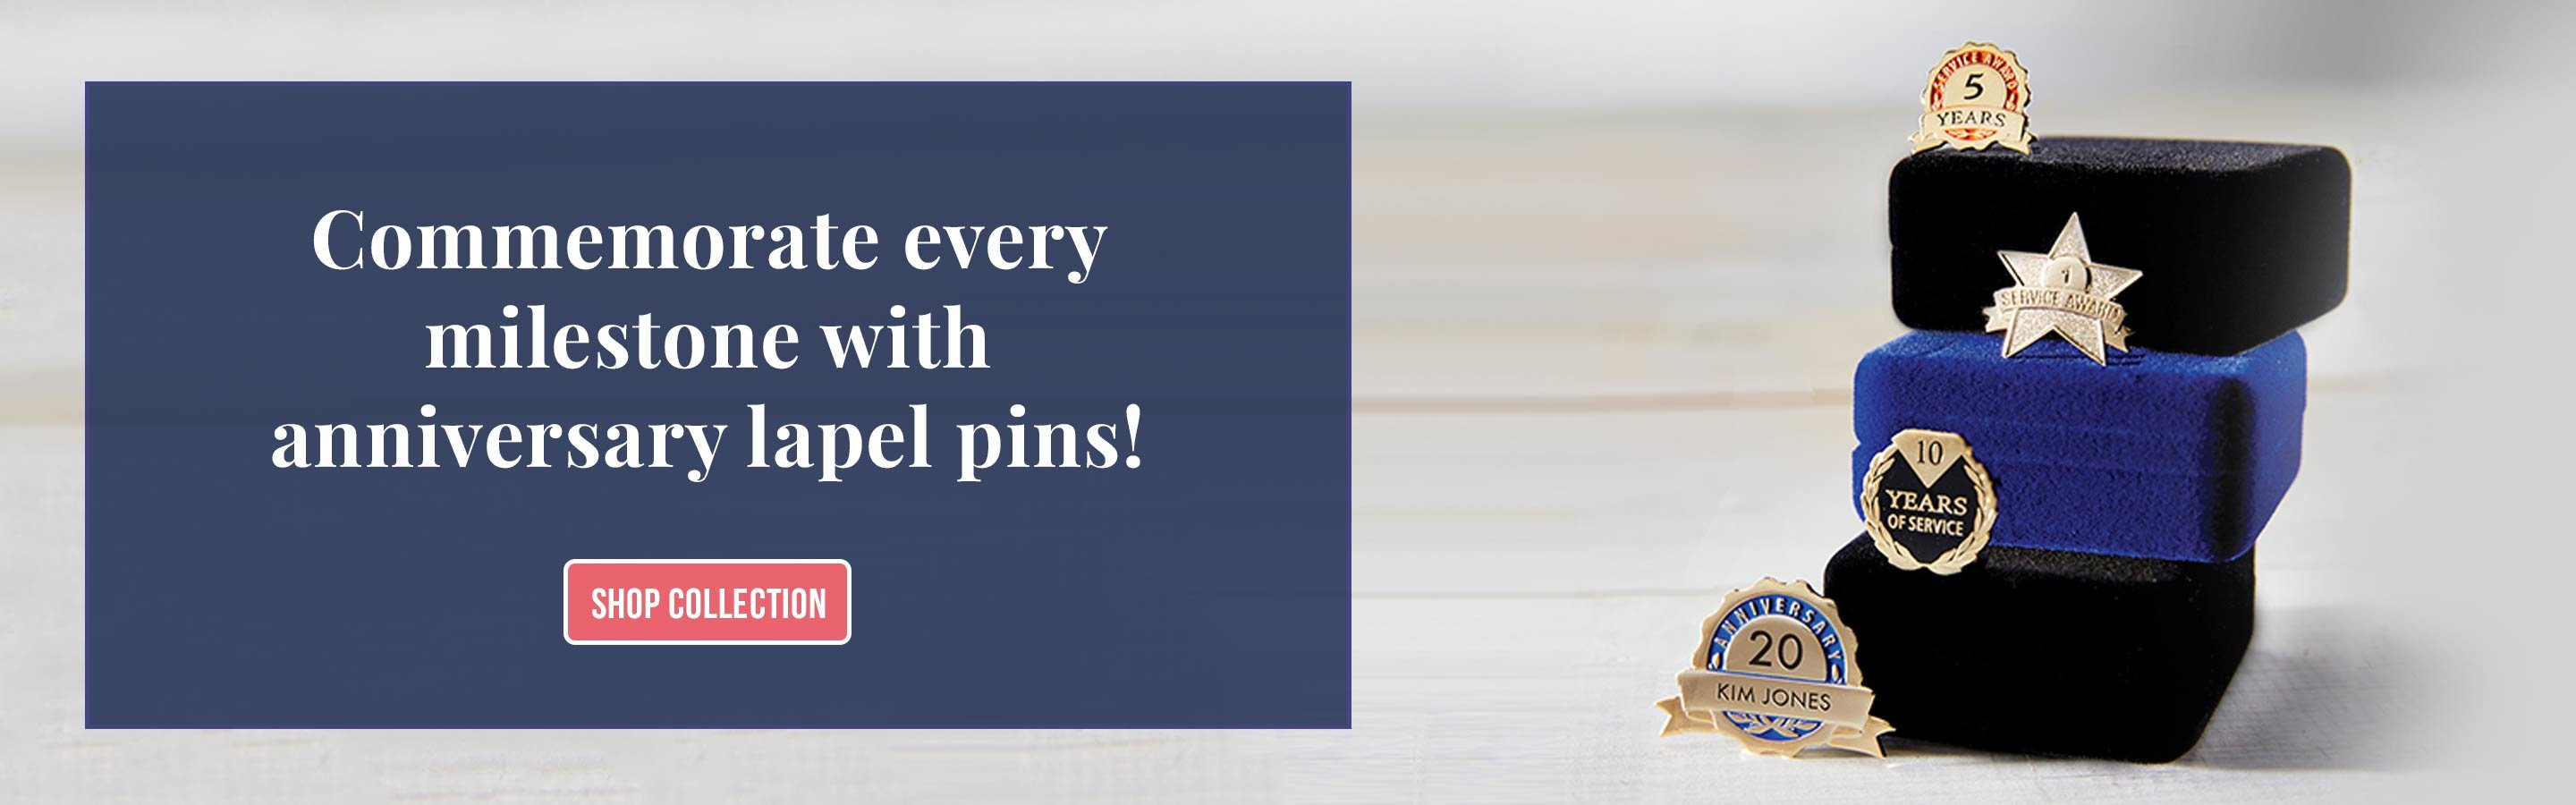 Commemorate every milestone with lapel pins.